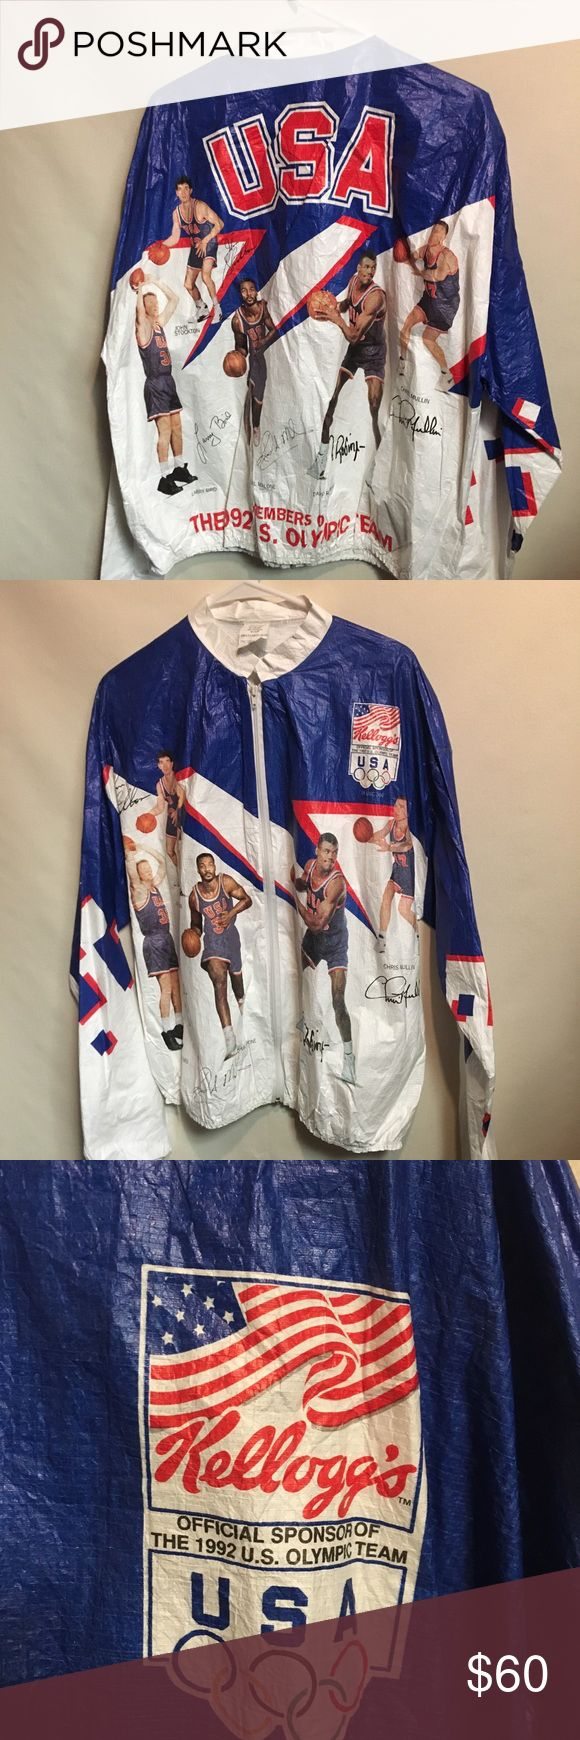 Vintage Dream Team Kellogg's Tyvec Windbreaker Vintage Men's L/XL Kellogg's USA Dream Team Tyvec Full Zip Windbreaker Jacket. One of the Classic Throwback Sports Jackets Of The 90's. These jackets were given away by Kellogg's Cereal by sending in proof of purchases. Jacket Features Dream Team Players: Larry Bird, David Robinson, Karl Malone, John Stockton and Chris Mullen. Vintage Jackets & Coats Windbreakers